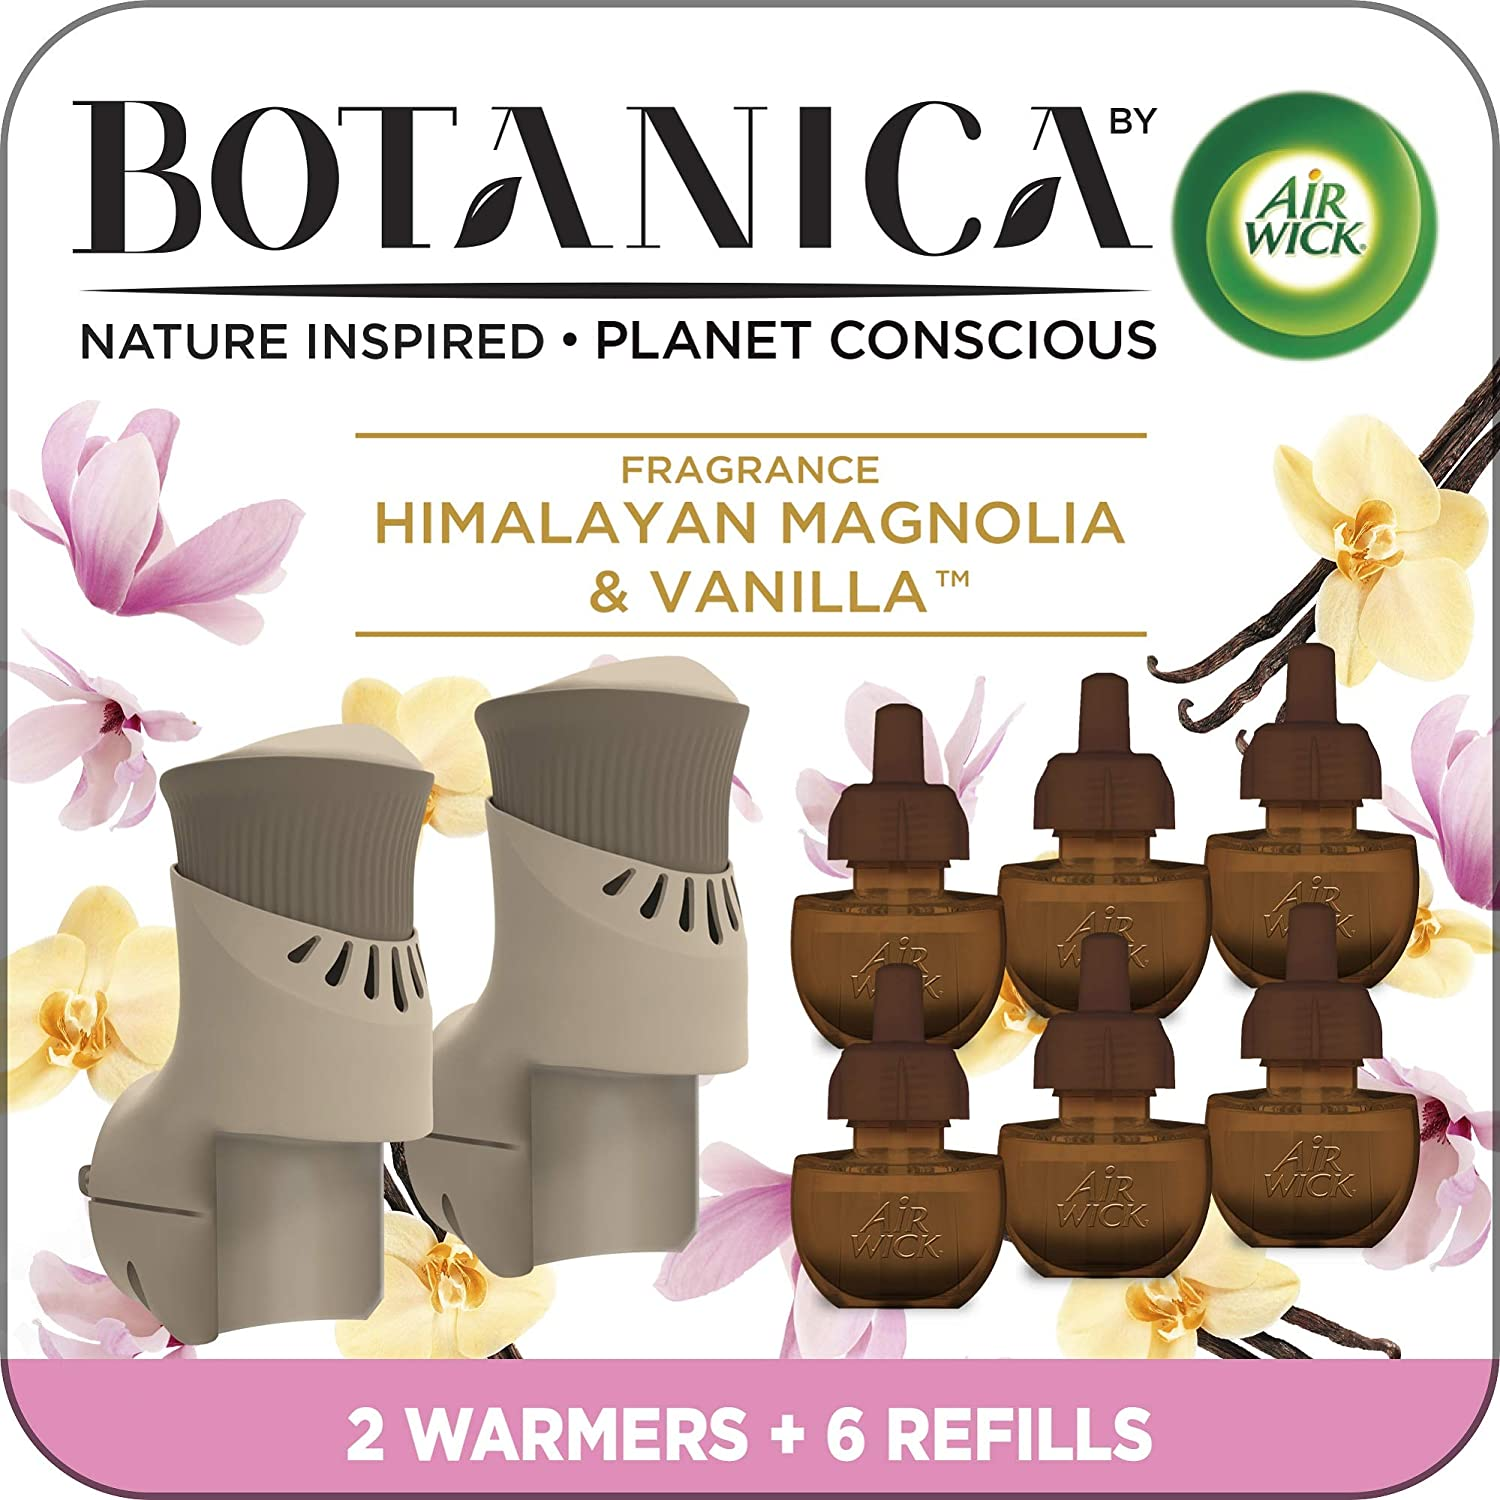 Botanica by Air Wick Plug in 2 Oil Max 40% OFF Scented Popular product Starter Warmers Kit